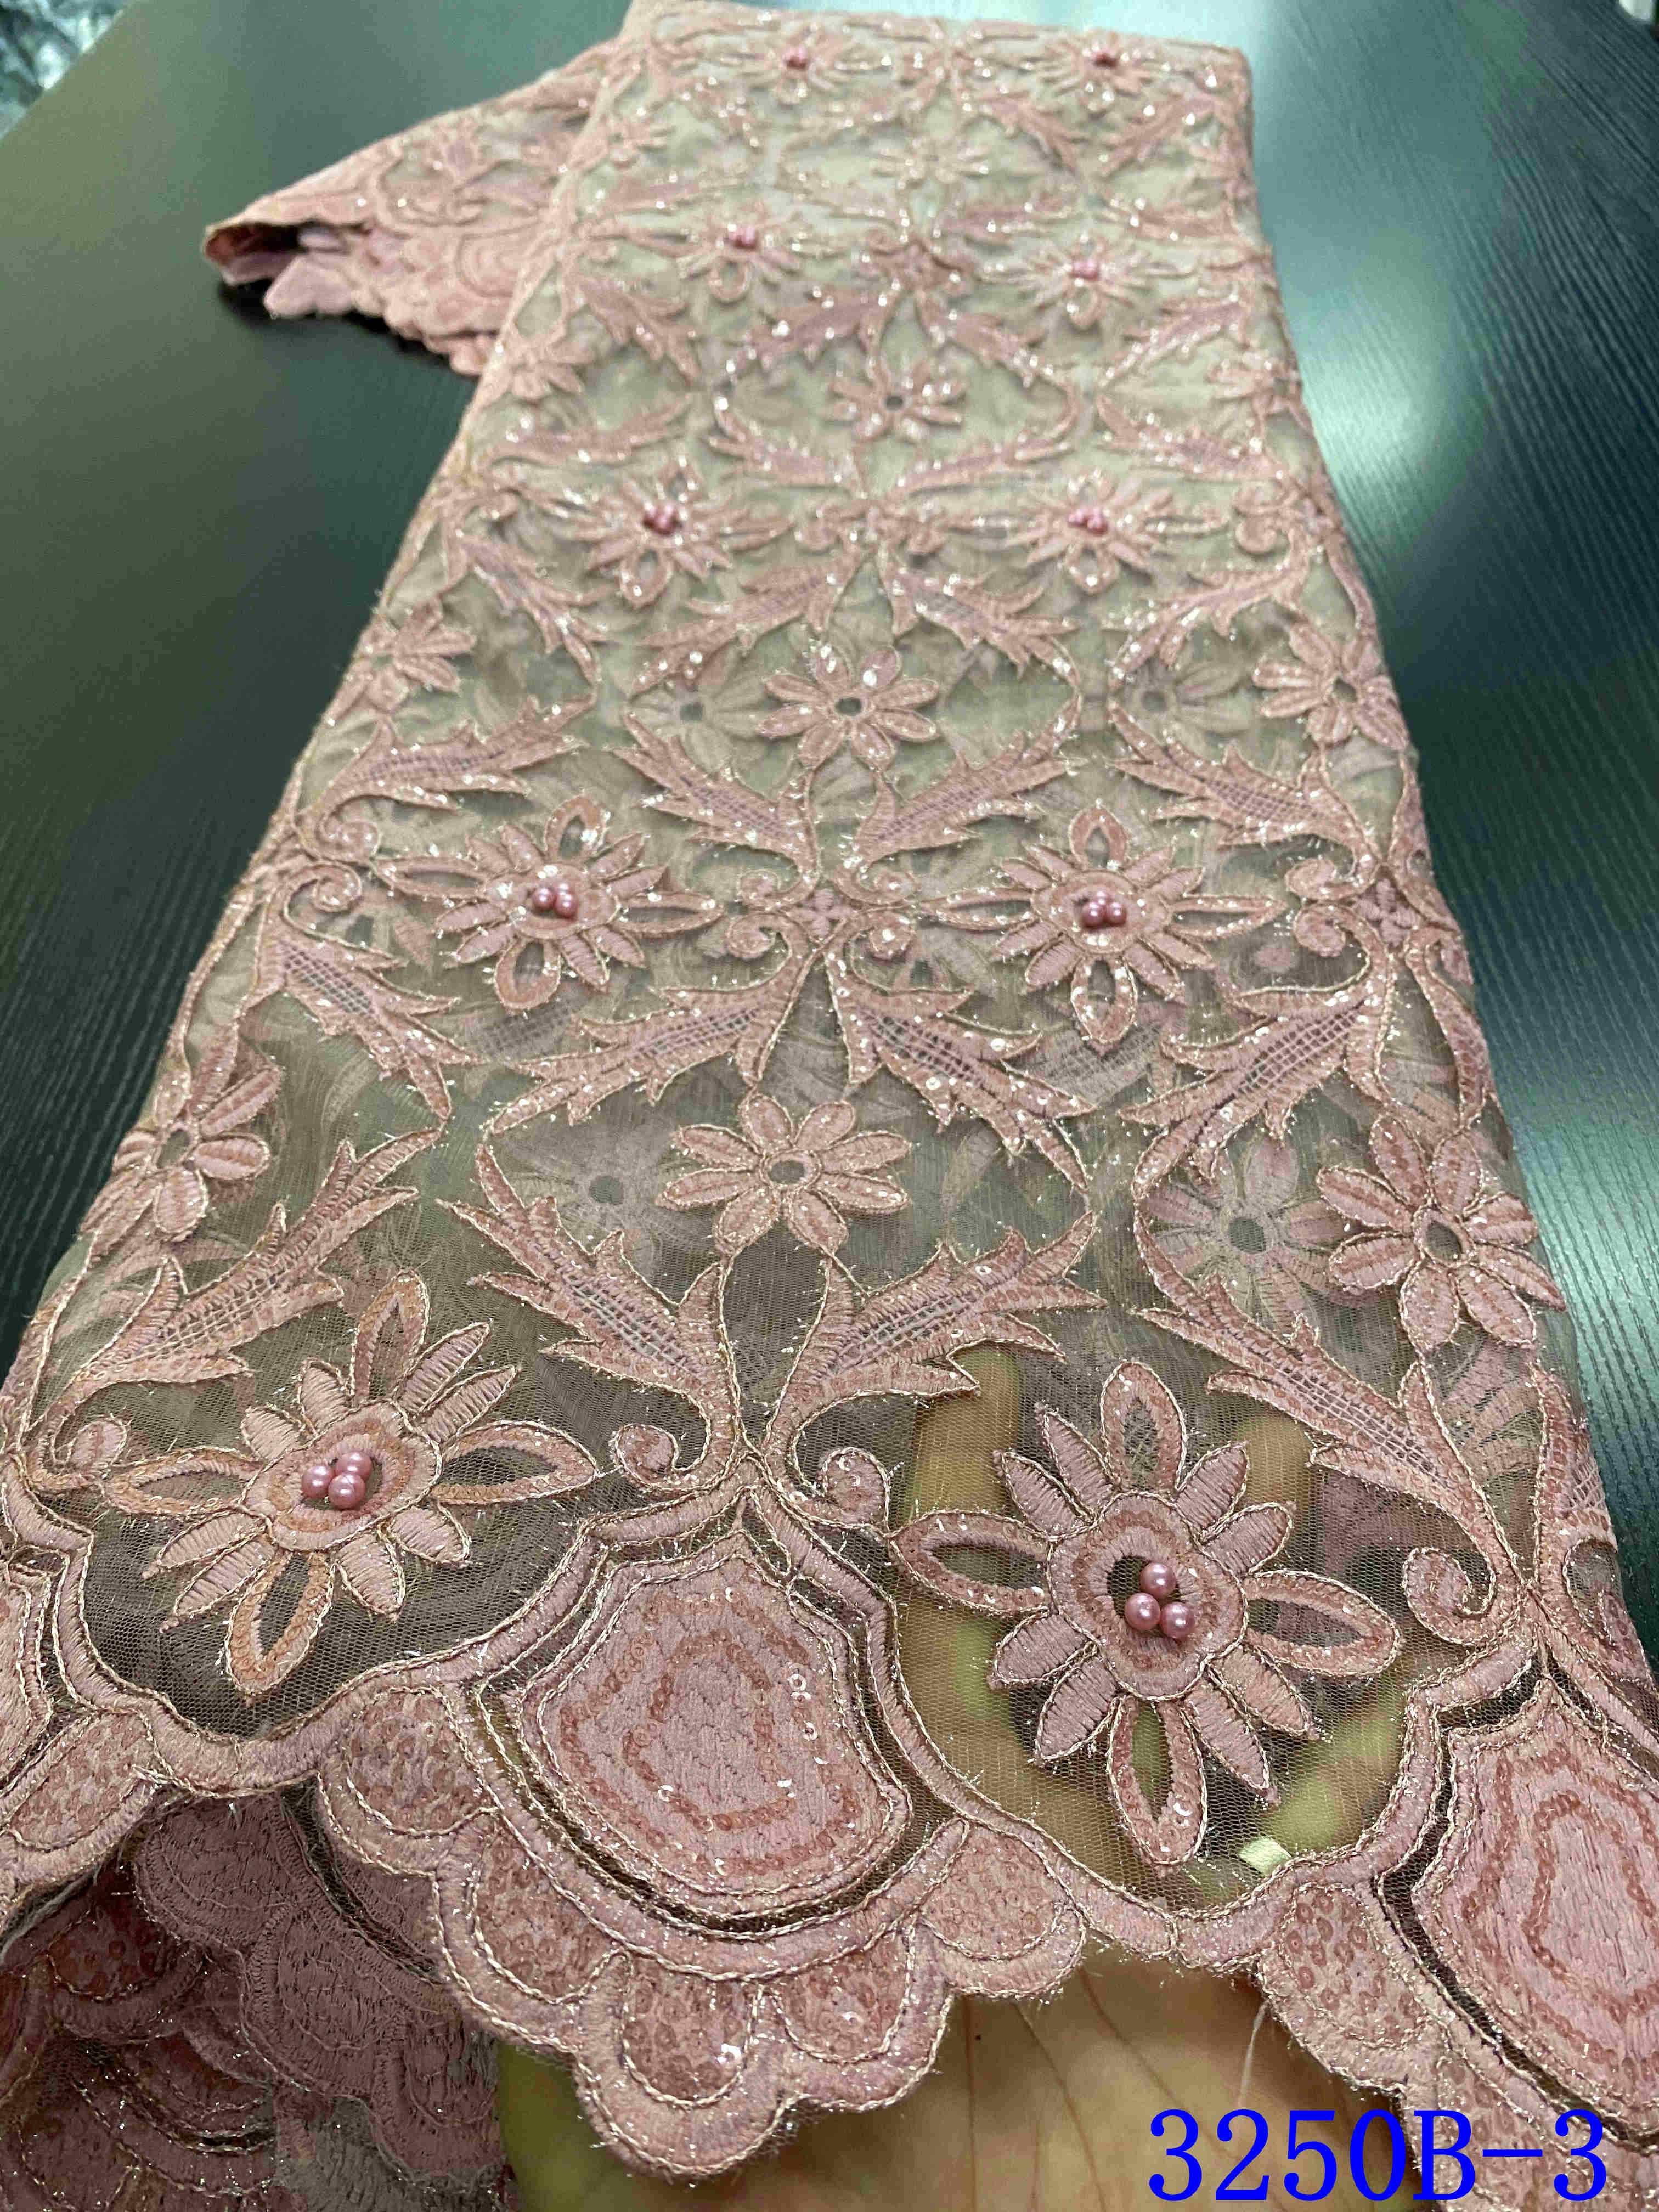 African Lace Fabric With Beads Latest 2020 French Nigerian Lace Fabrics 2020 High Quality Lace Material For Wedding YA3250B-3